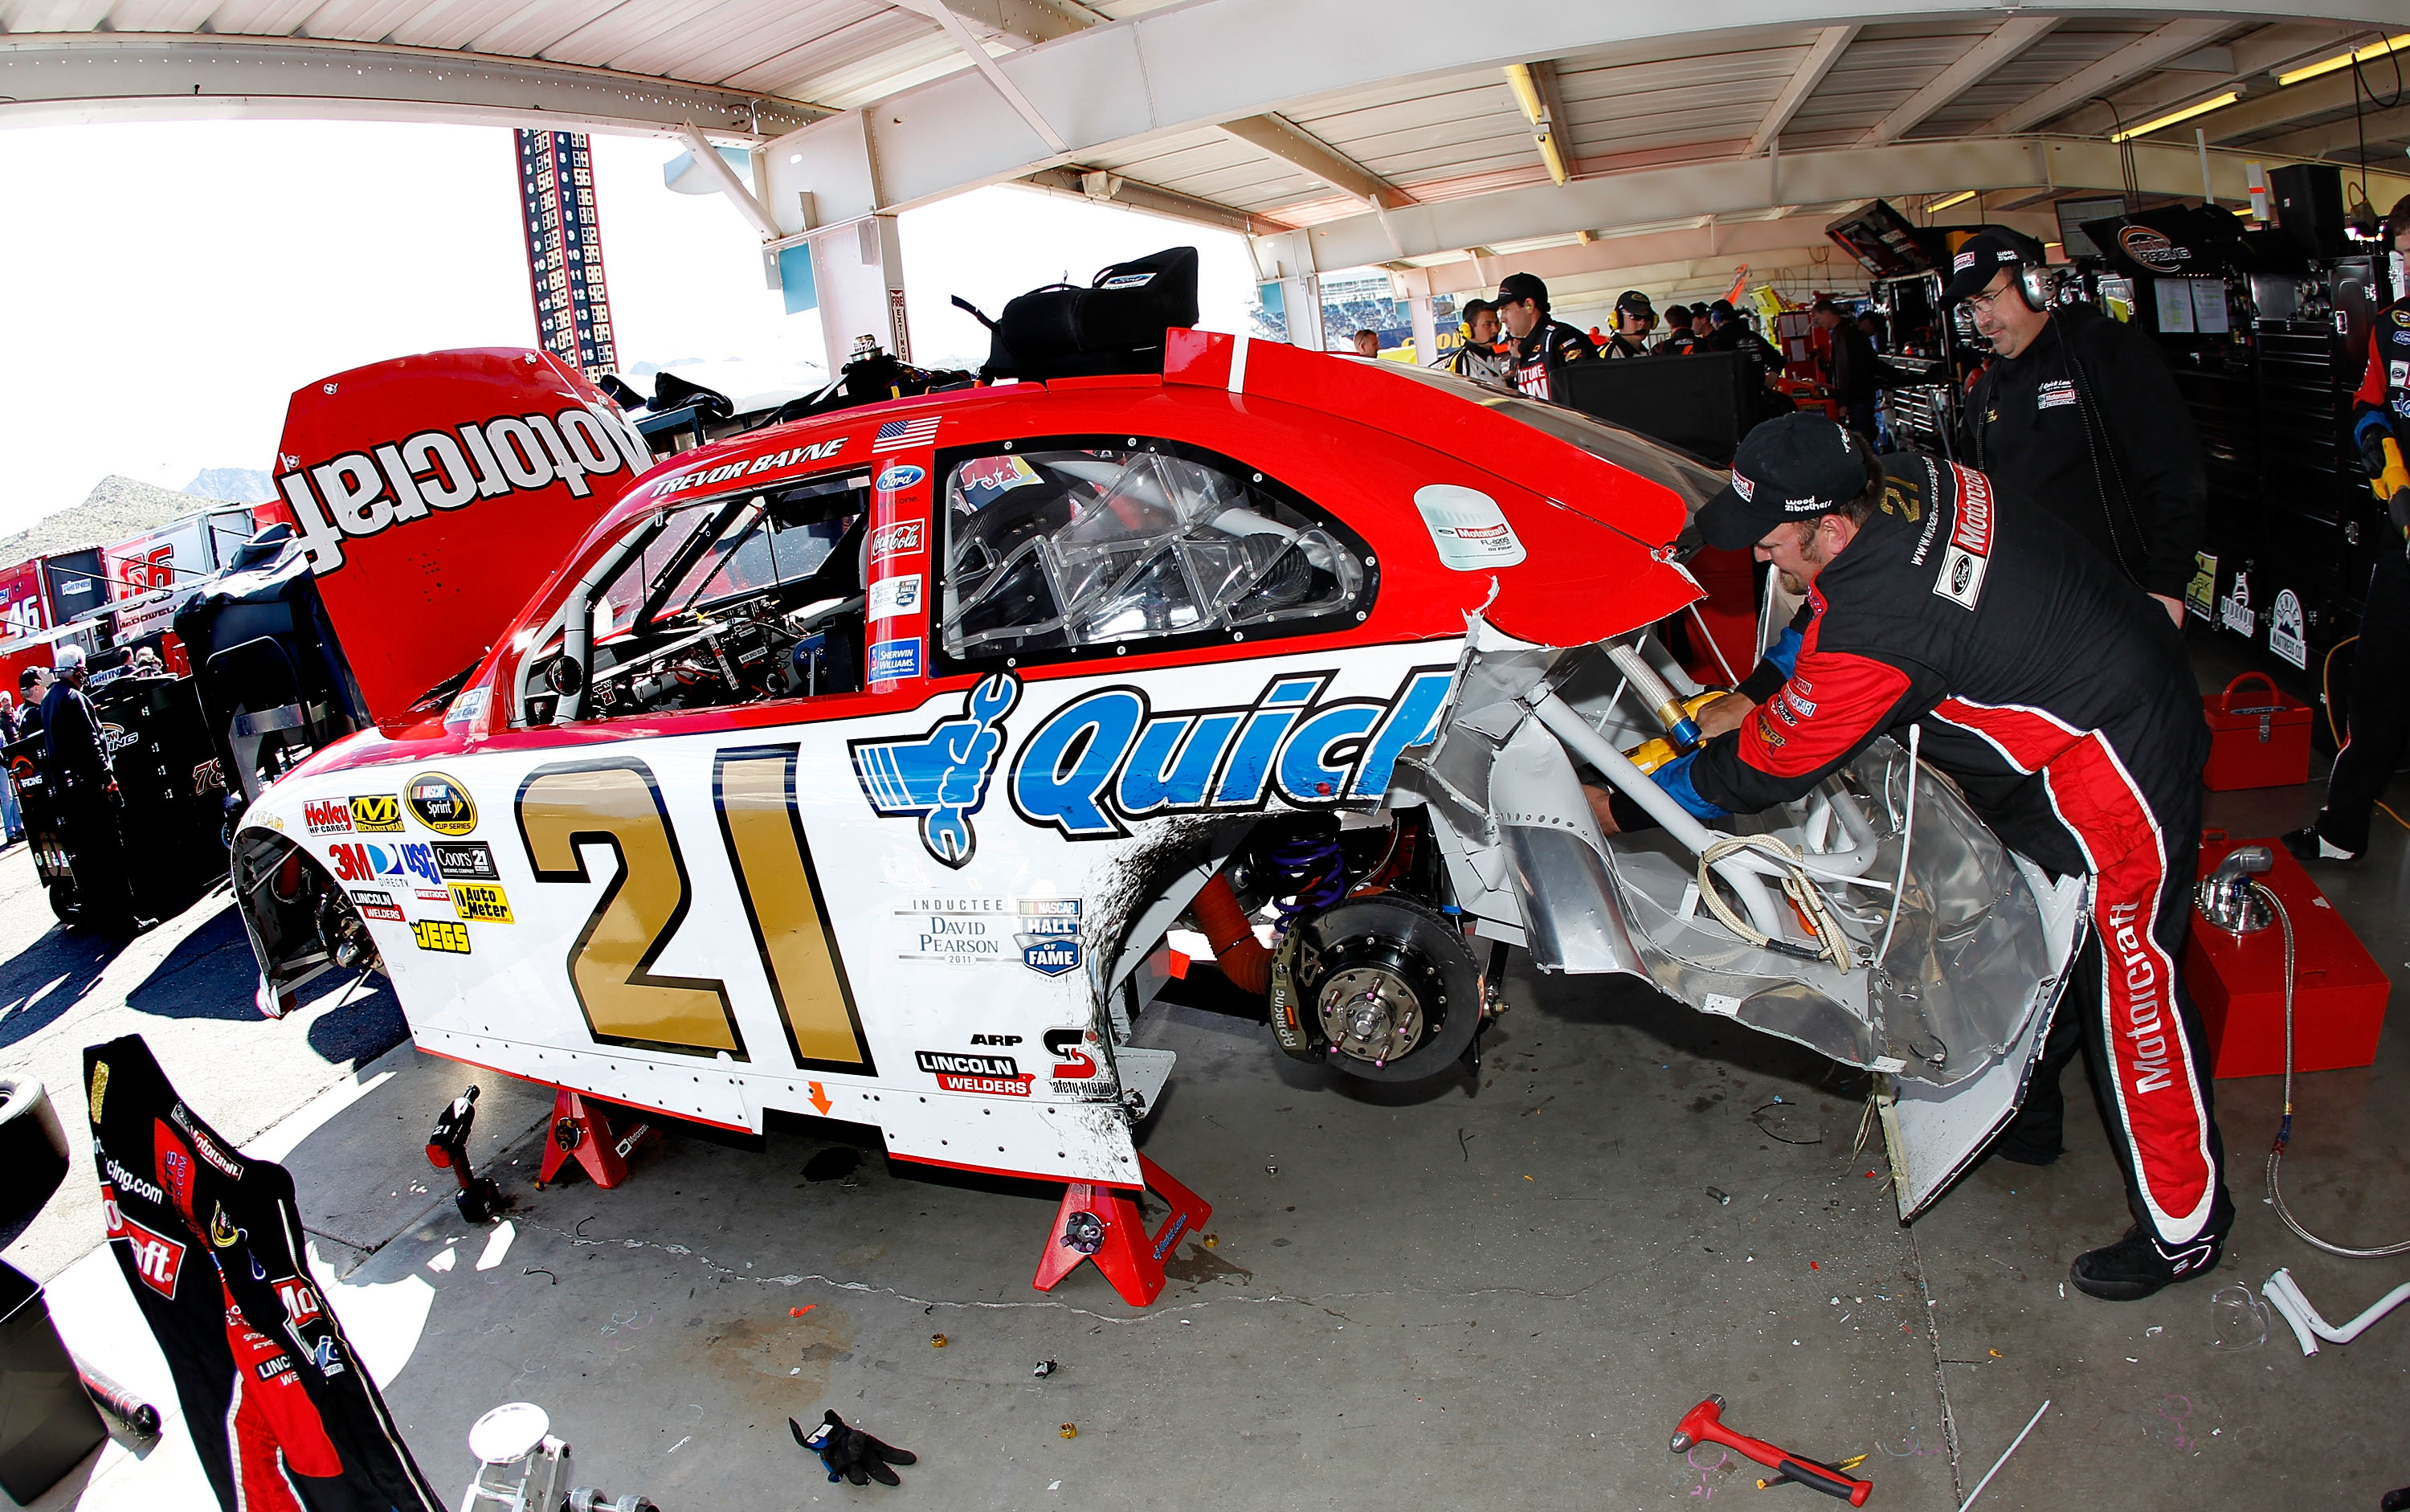 AVONDALE, AZ - FEBRUARY 27:  Crew members work on the car Trevor Bayne, driver of the #21 Motorcraft/Quick Lane Ford, after Bayne crashed during the NASCAR Sprint Cup Series Subway Fresh Fit 500 at Phoenix International Raceway on February 27, 2011 in Avo